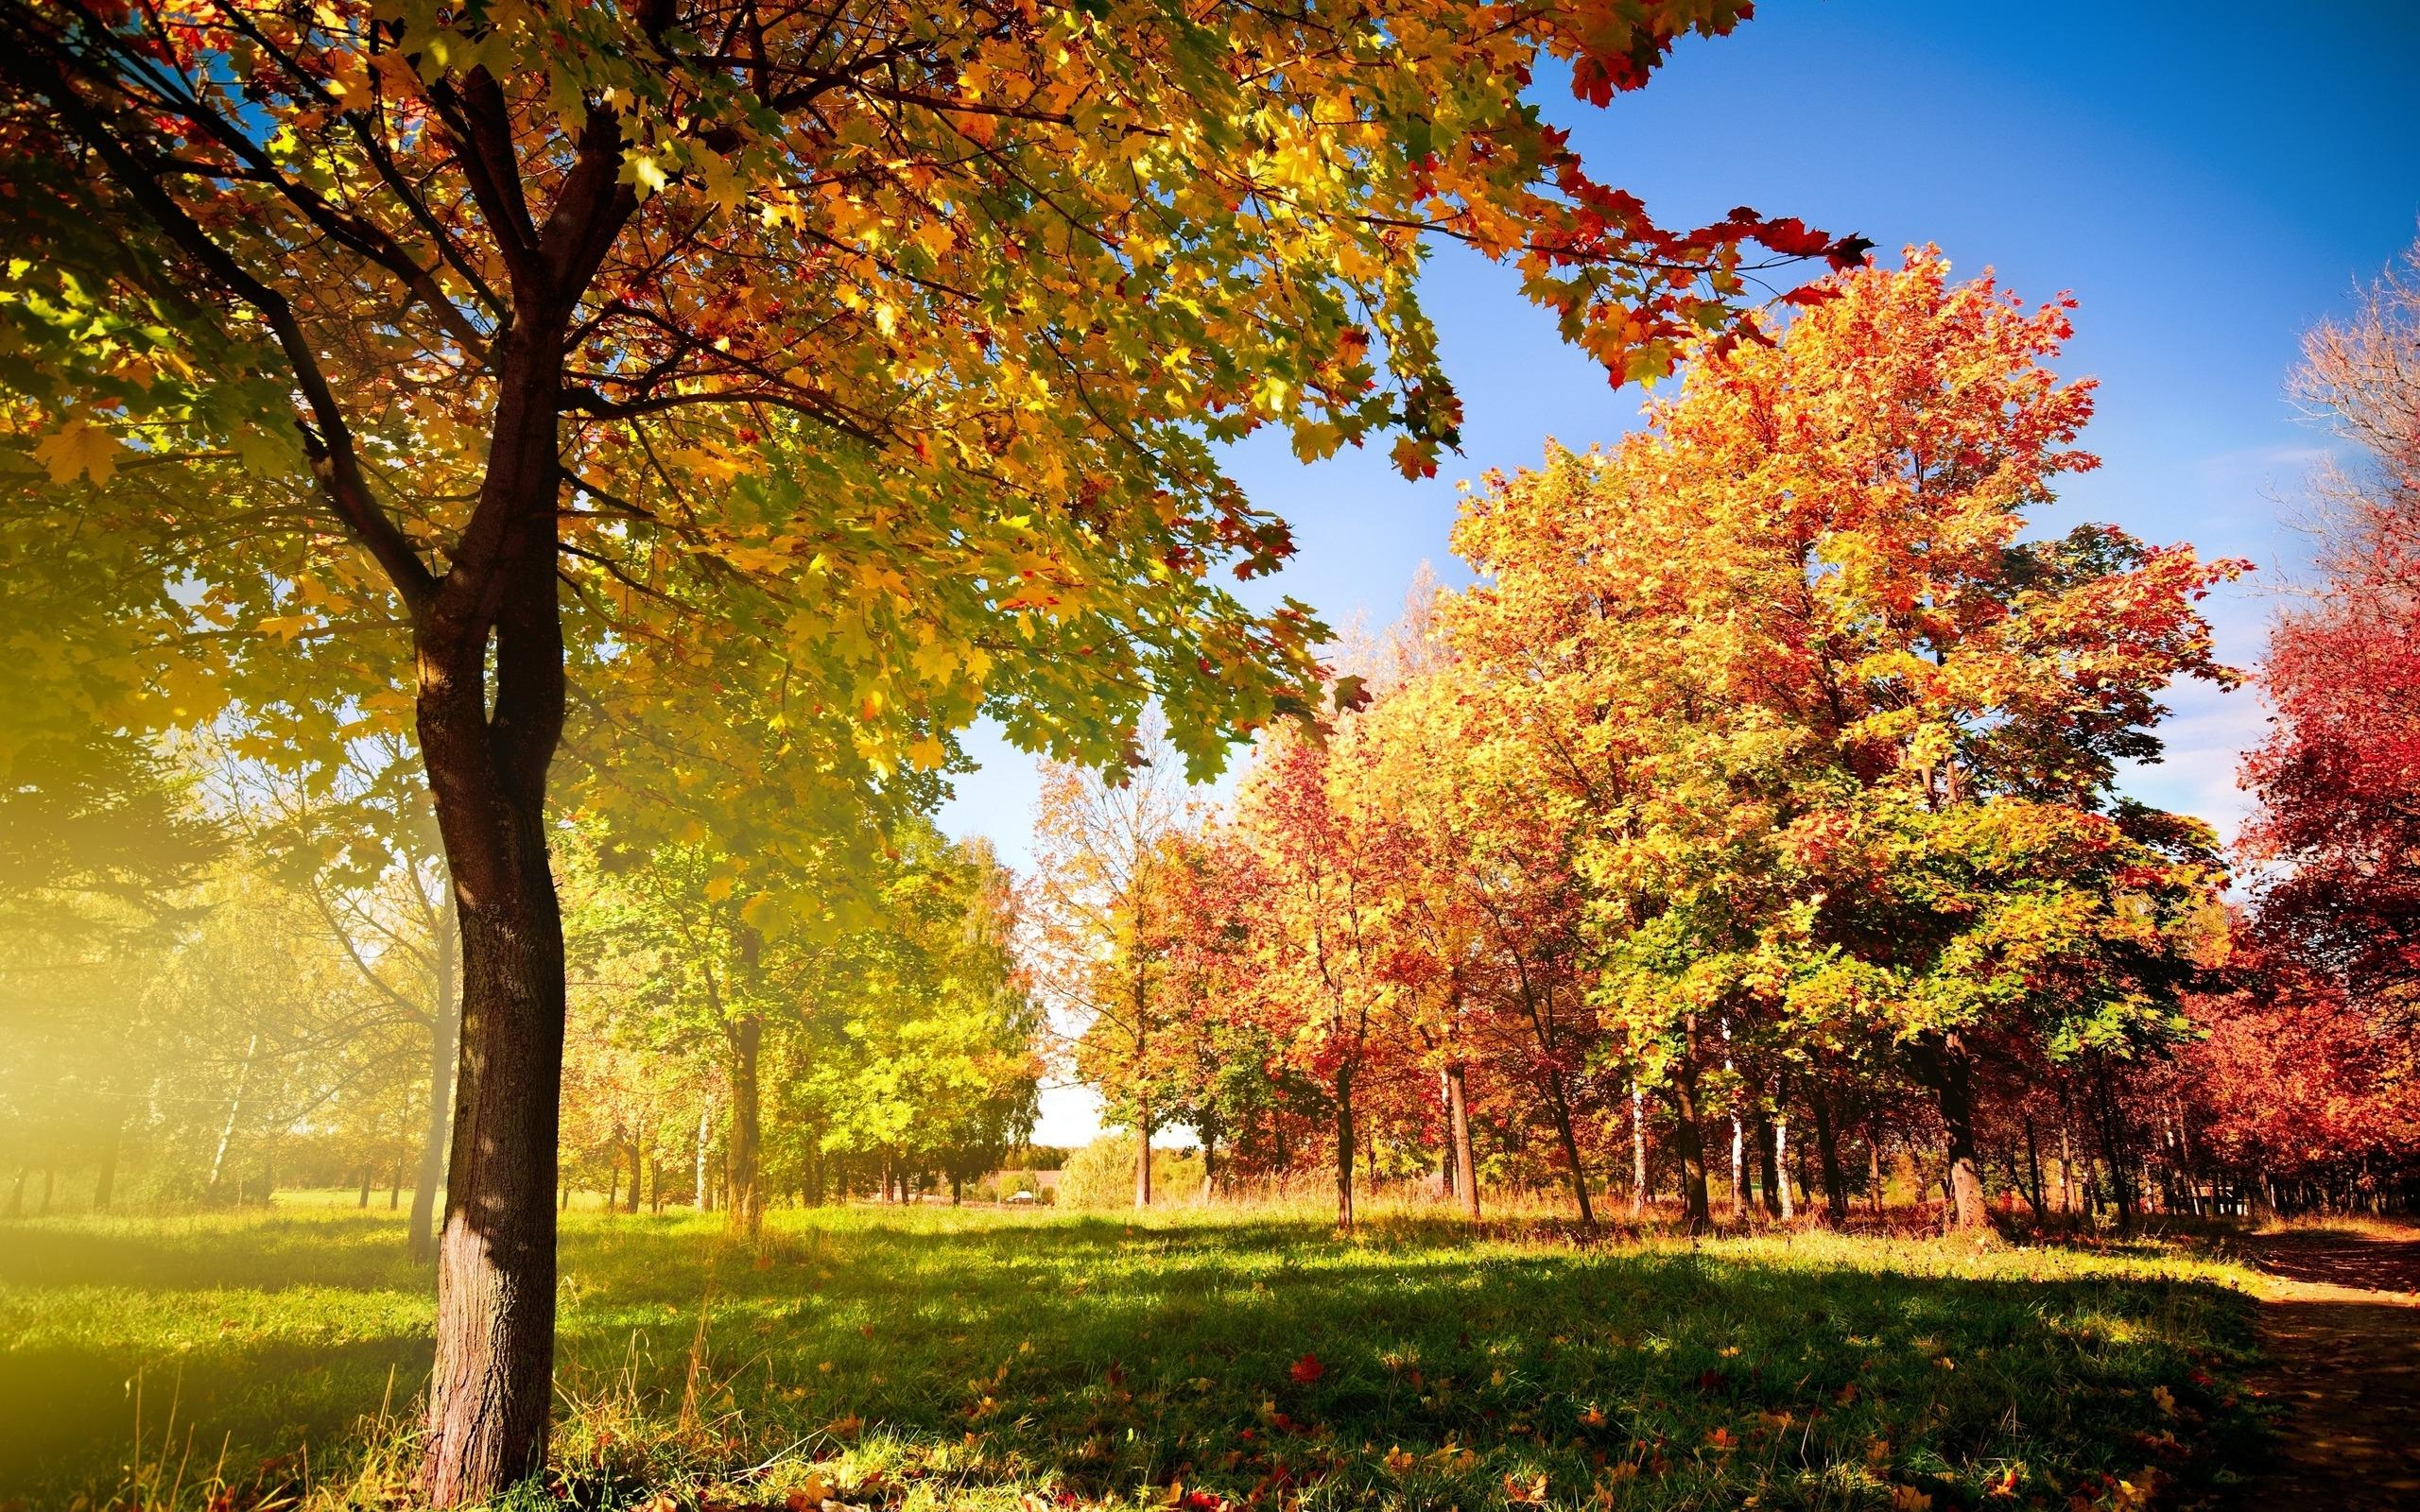 autumn trees hd wallpaper